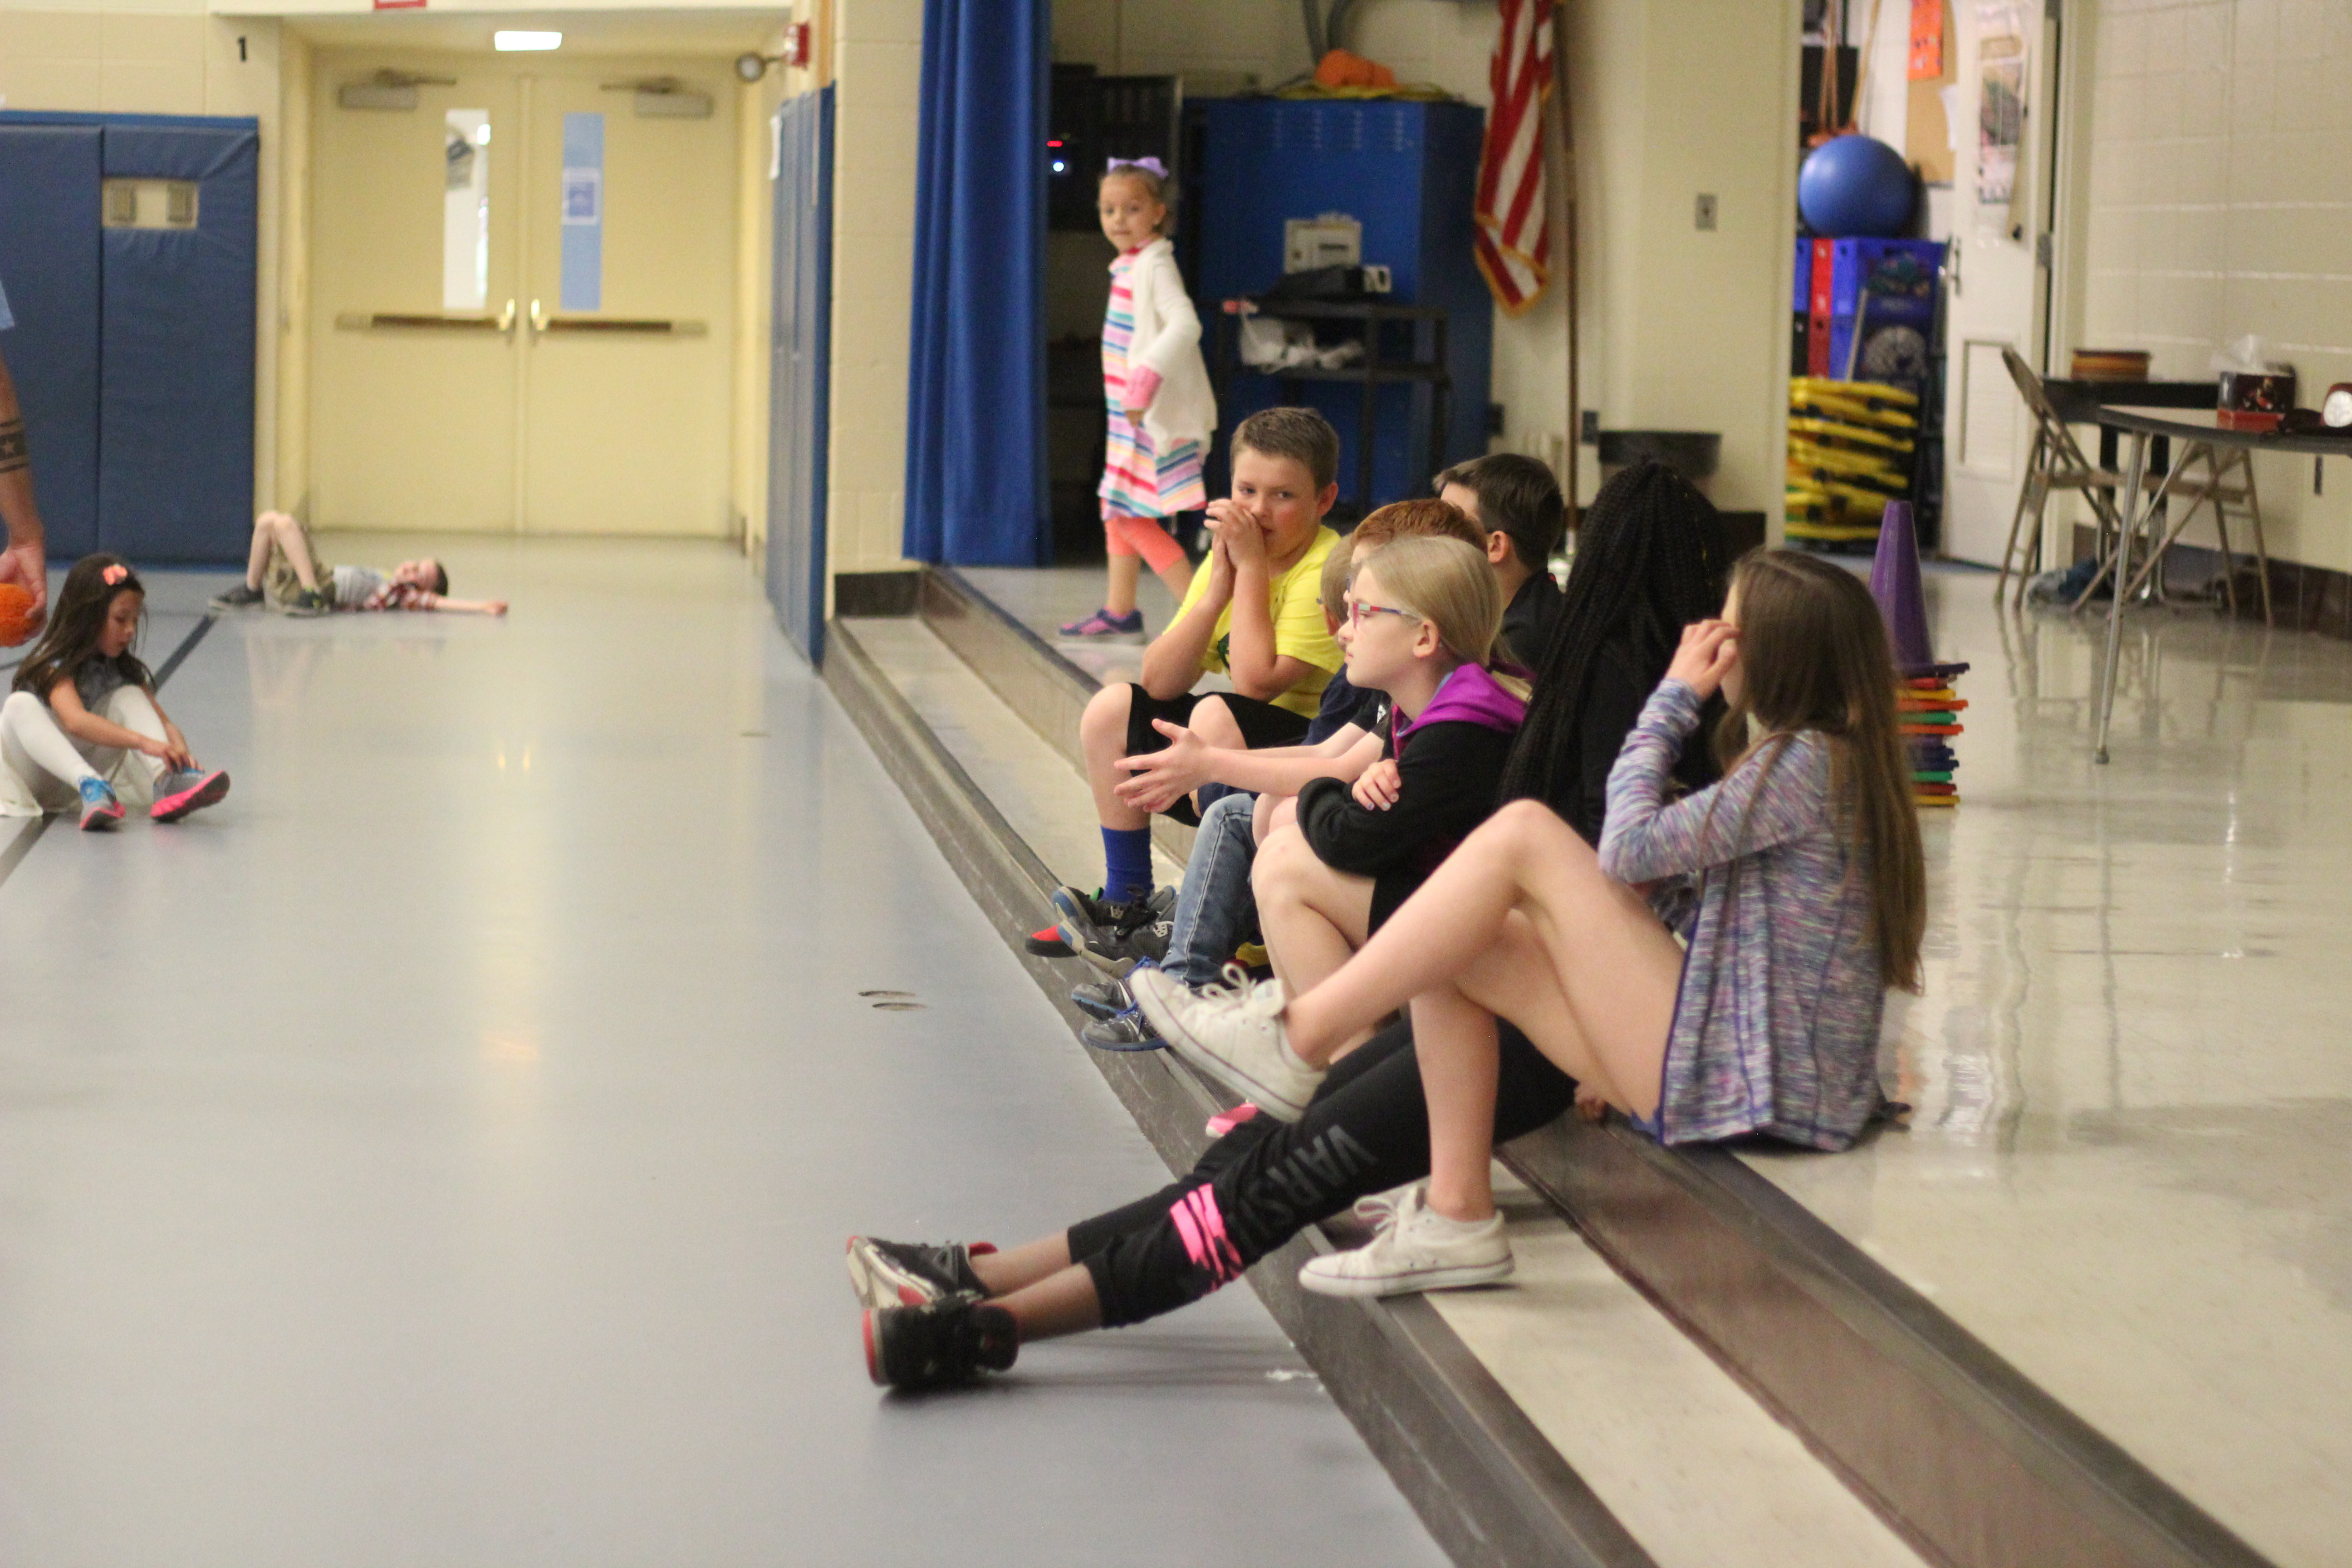 Fourth graders watch the gym class